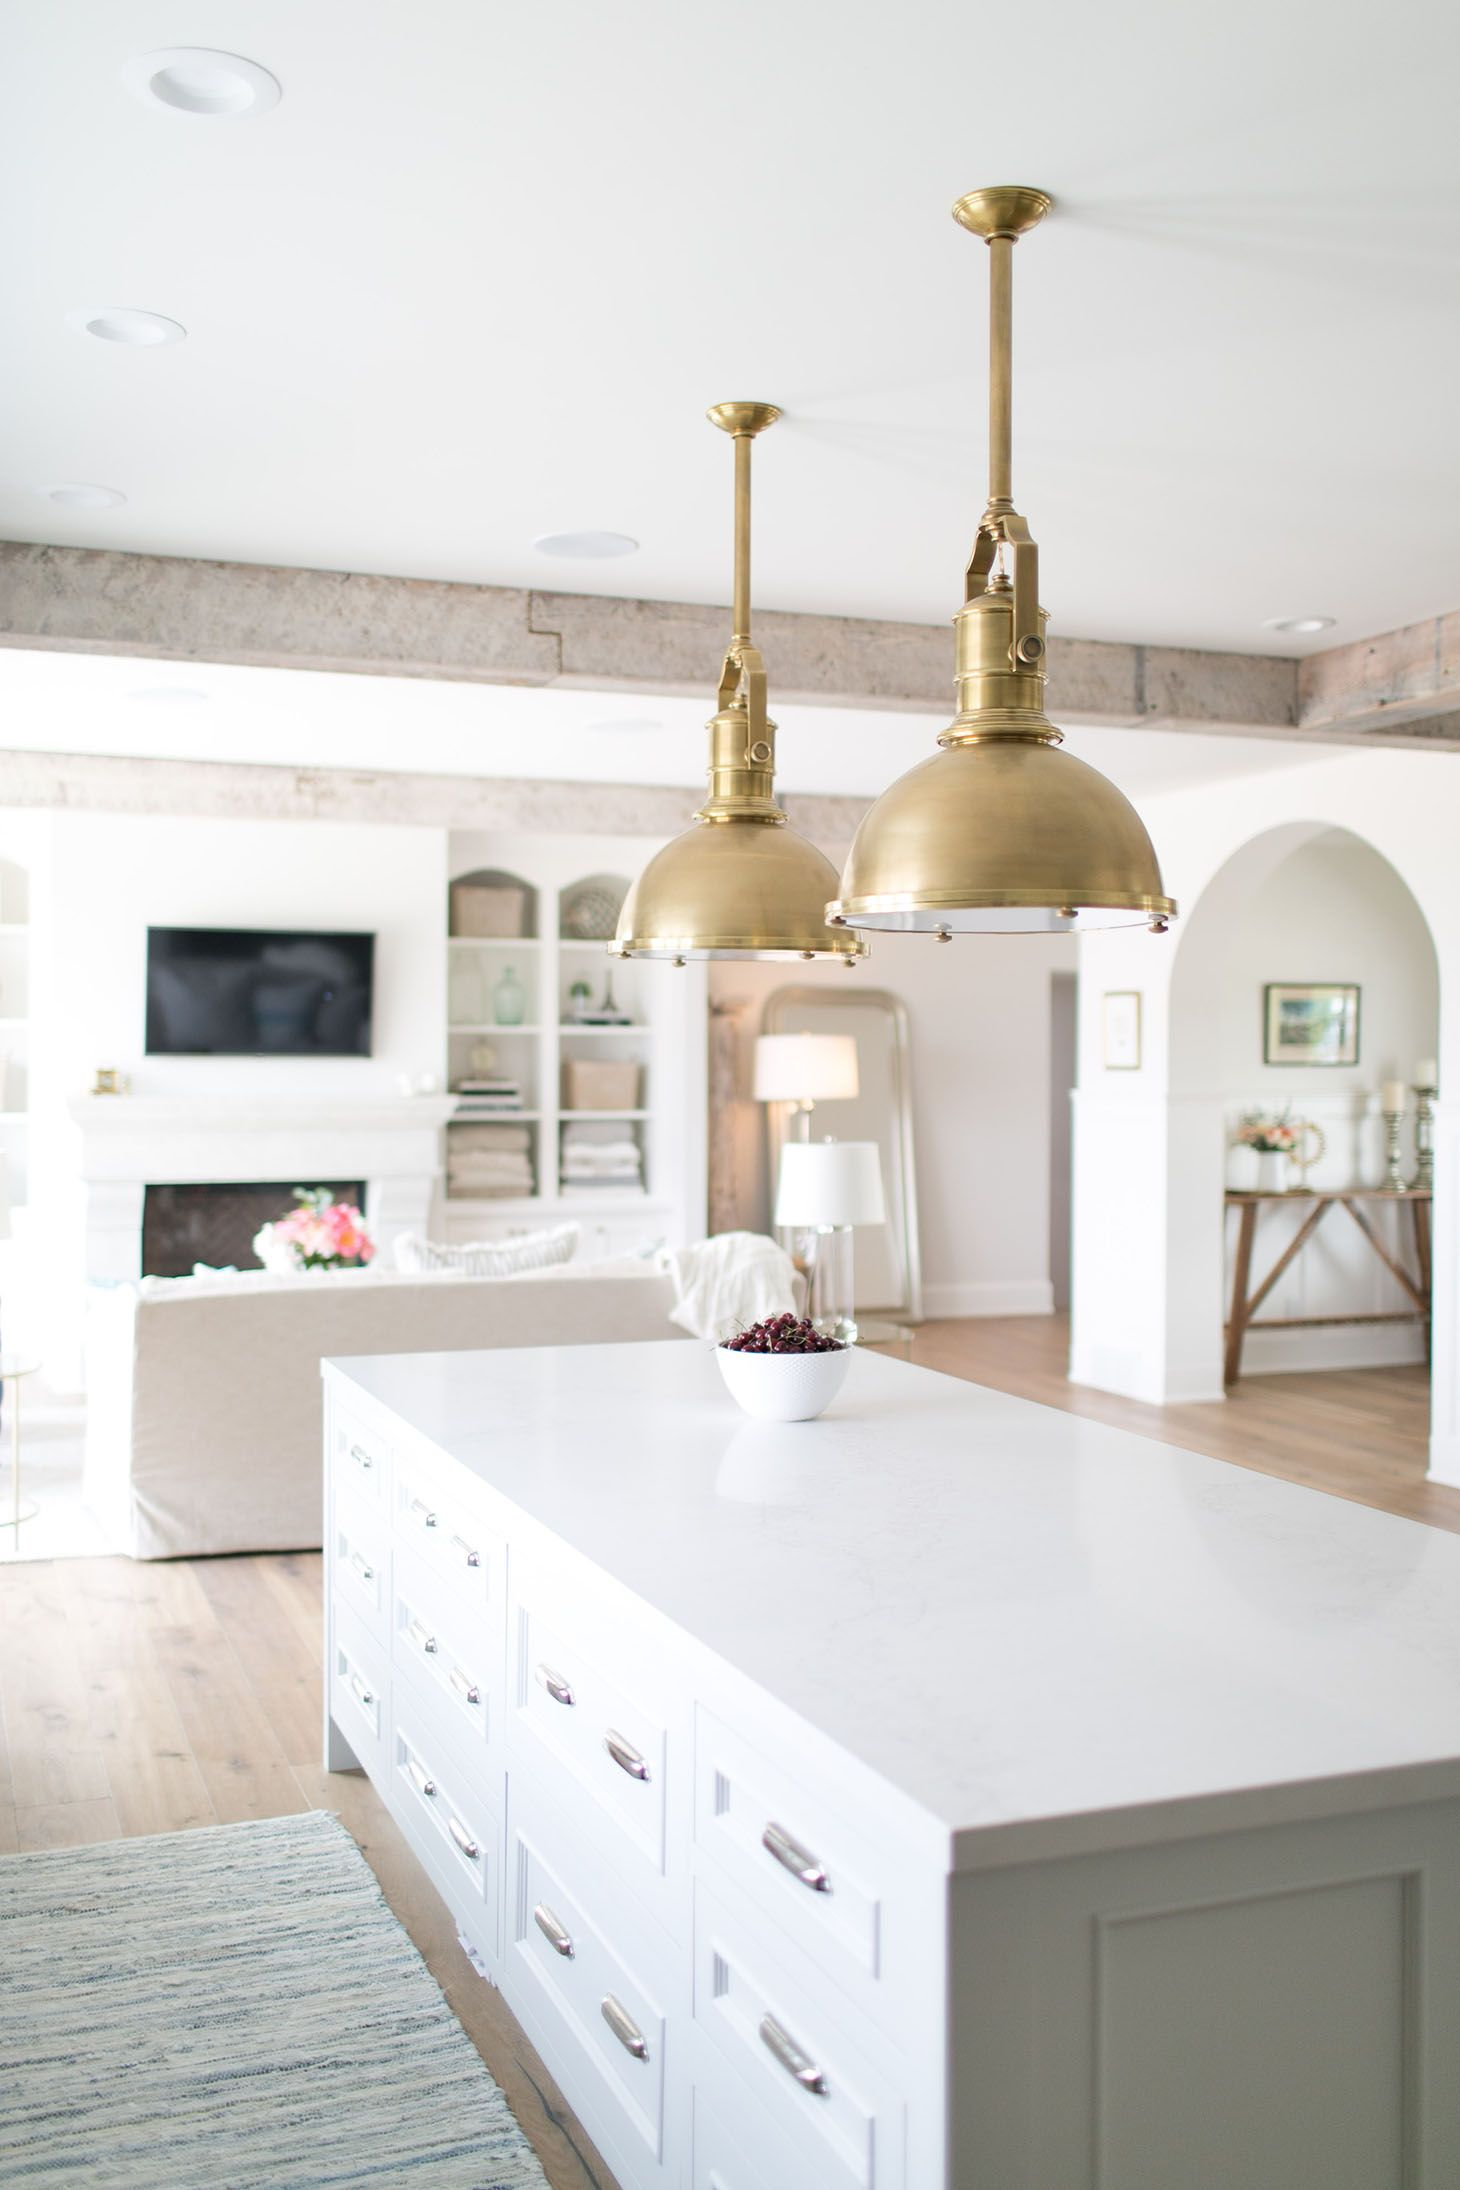 How to Pick the Perfect Countertop